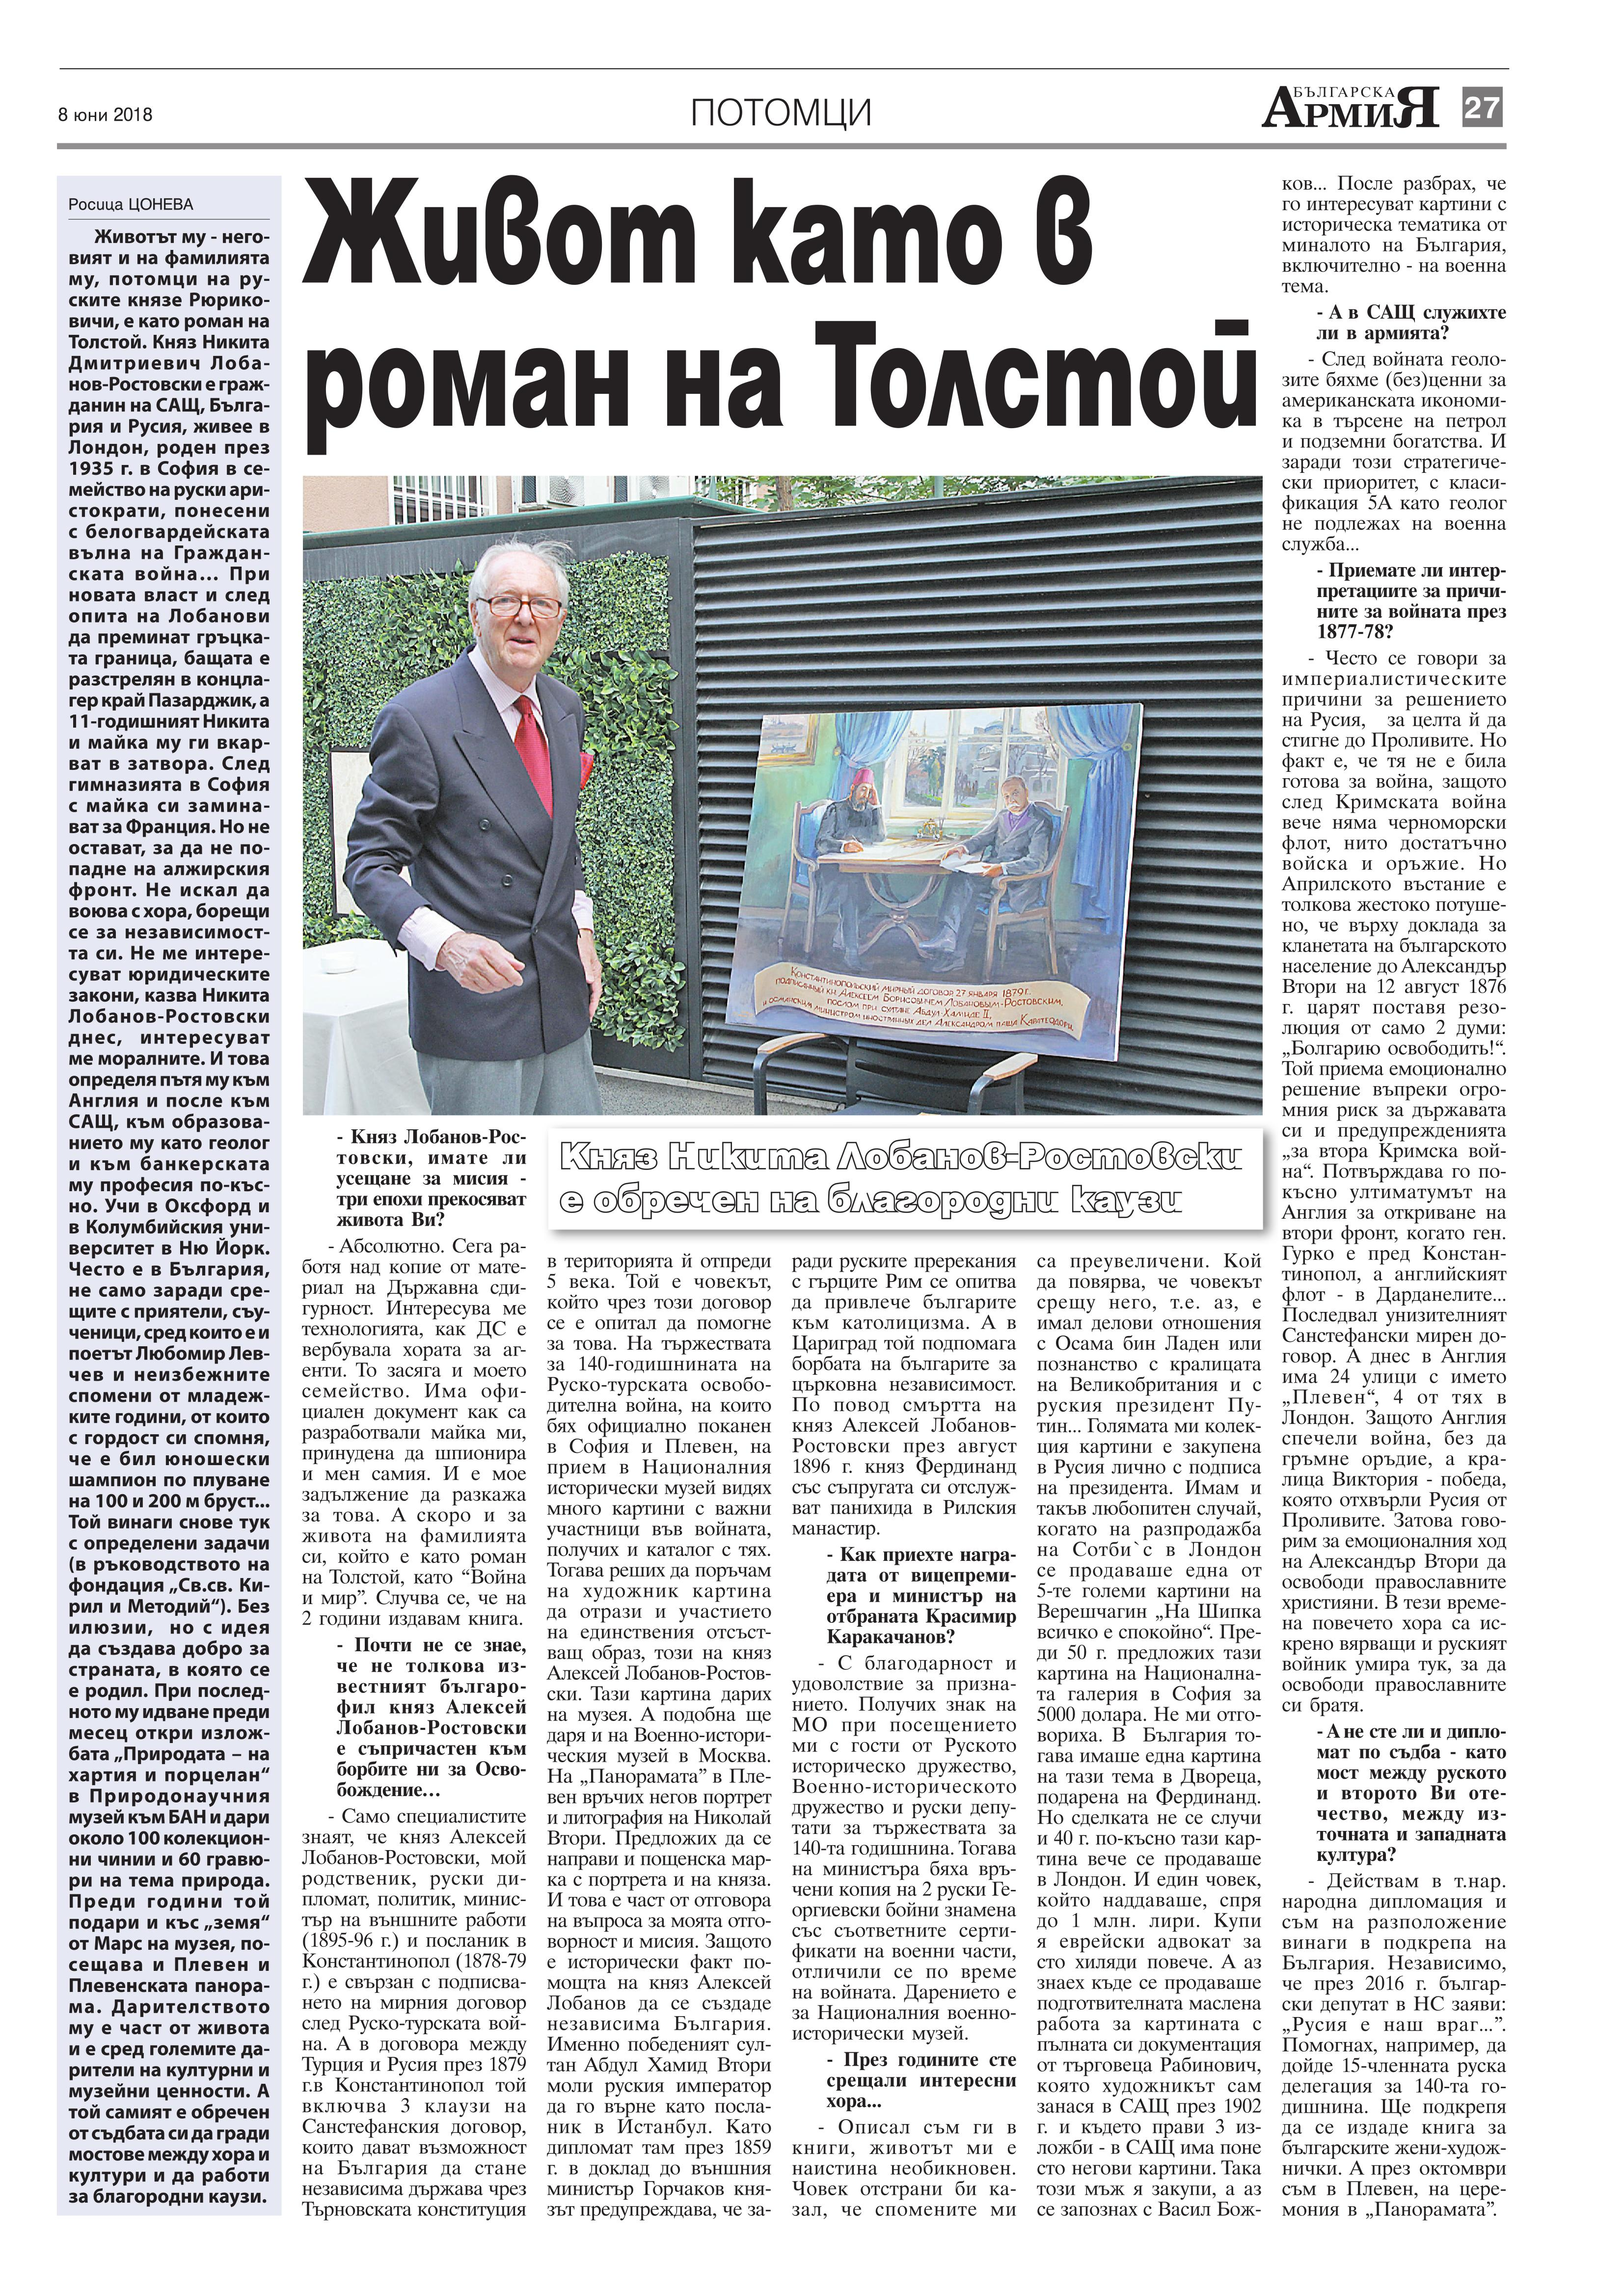 http://armymedia.bg/wp-content/uploads/2015/06/27.page1_-47.jpg